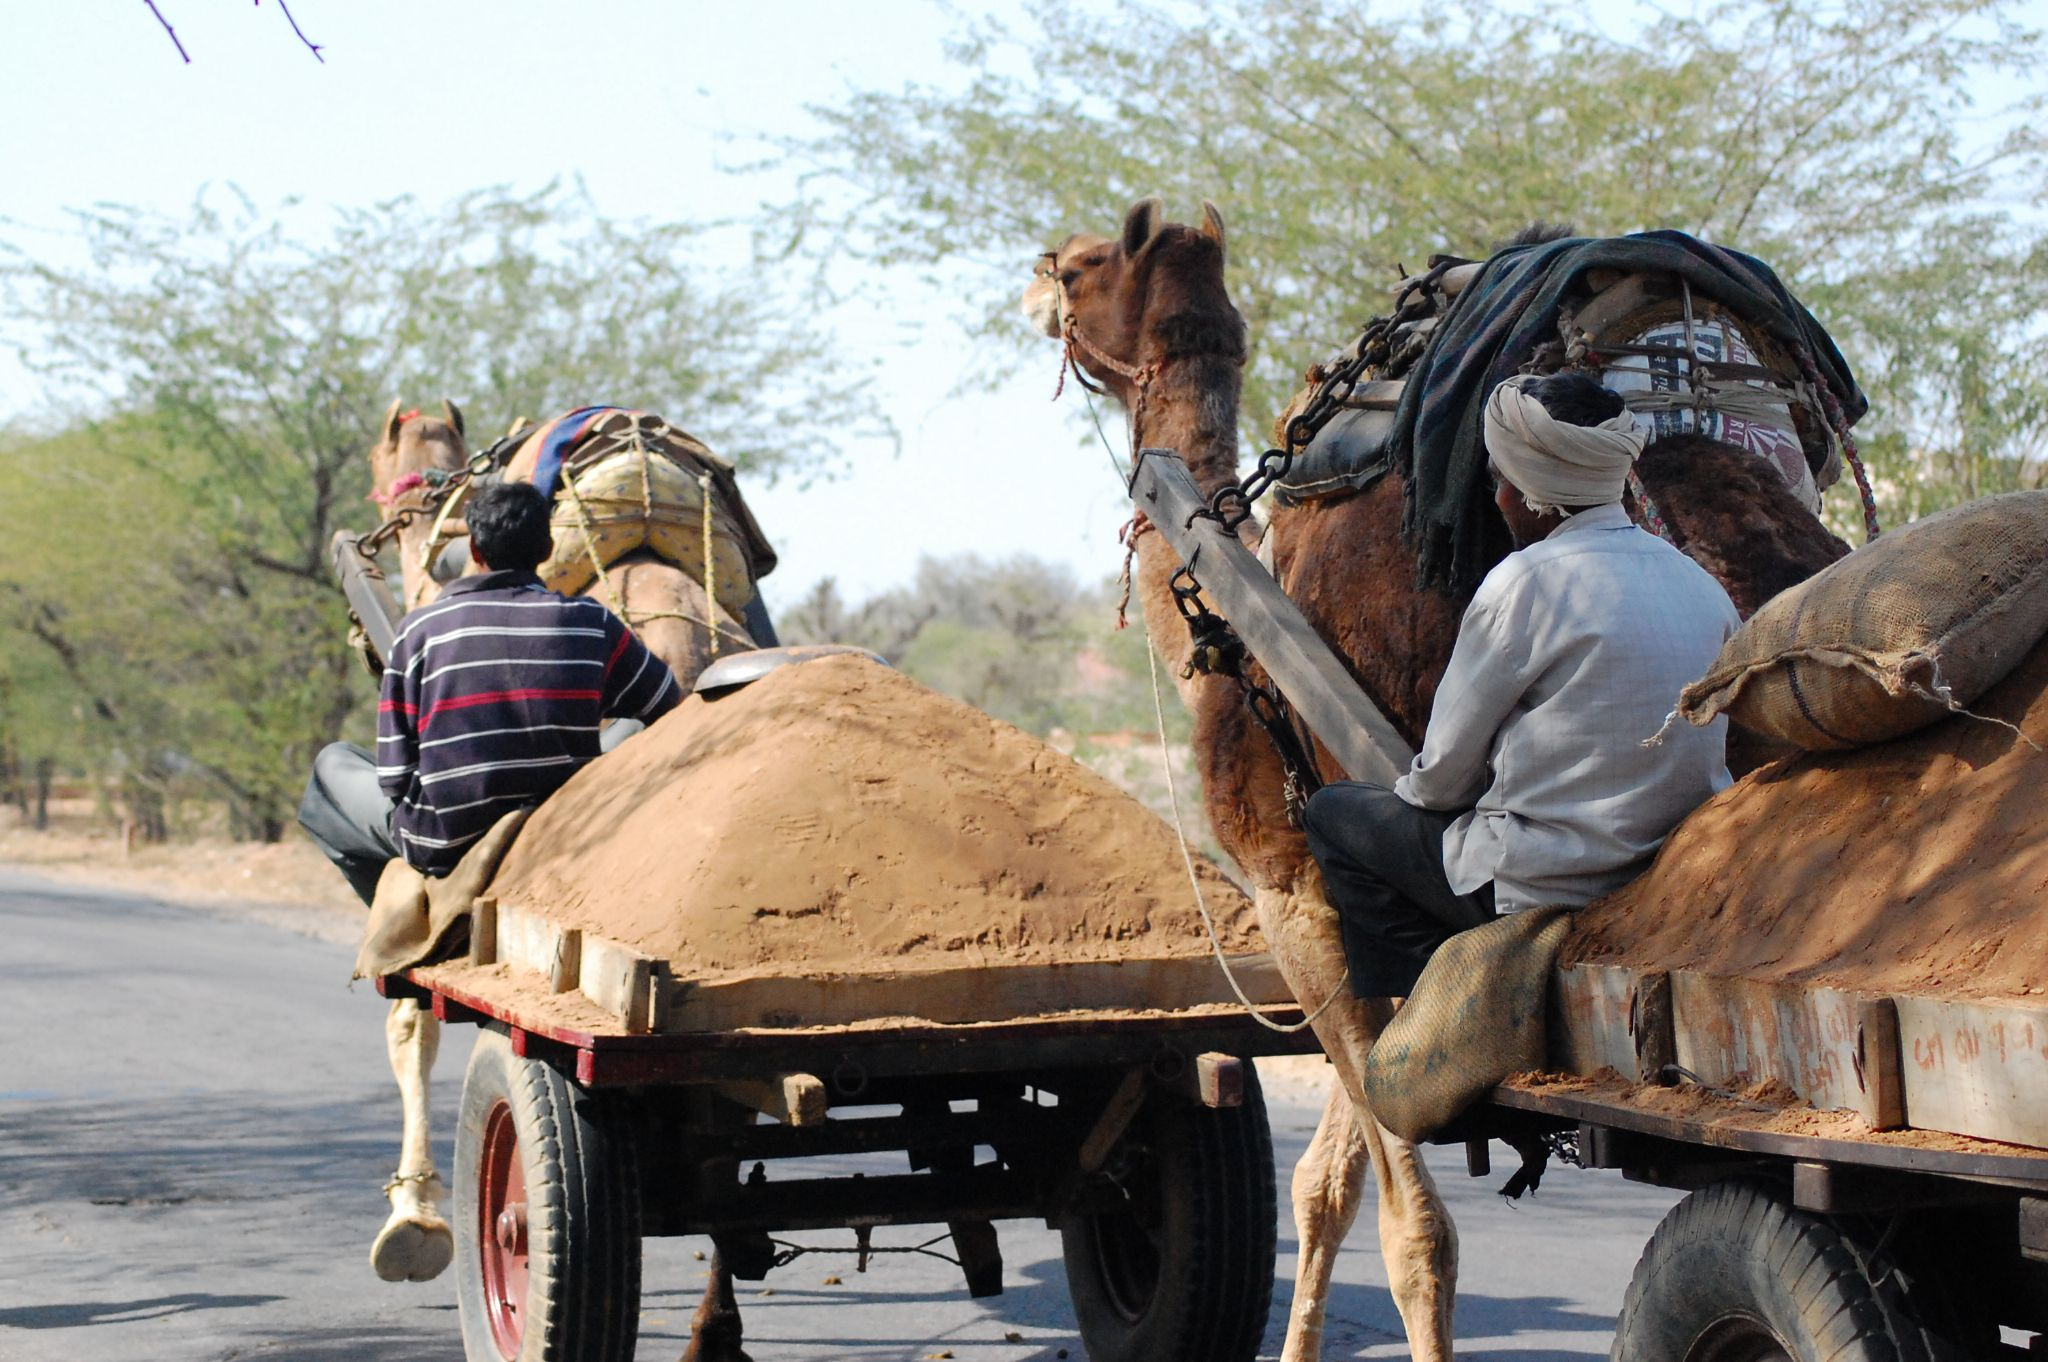 Rajasthan - On the Road by ma.lange.5